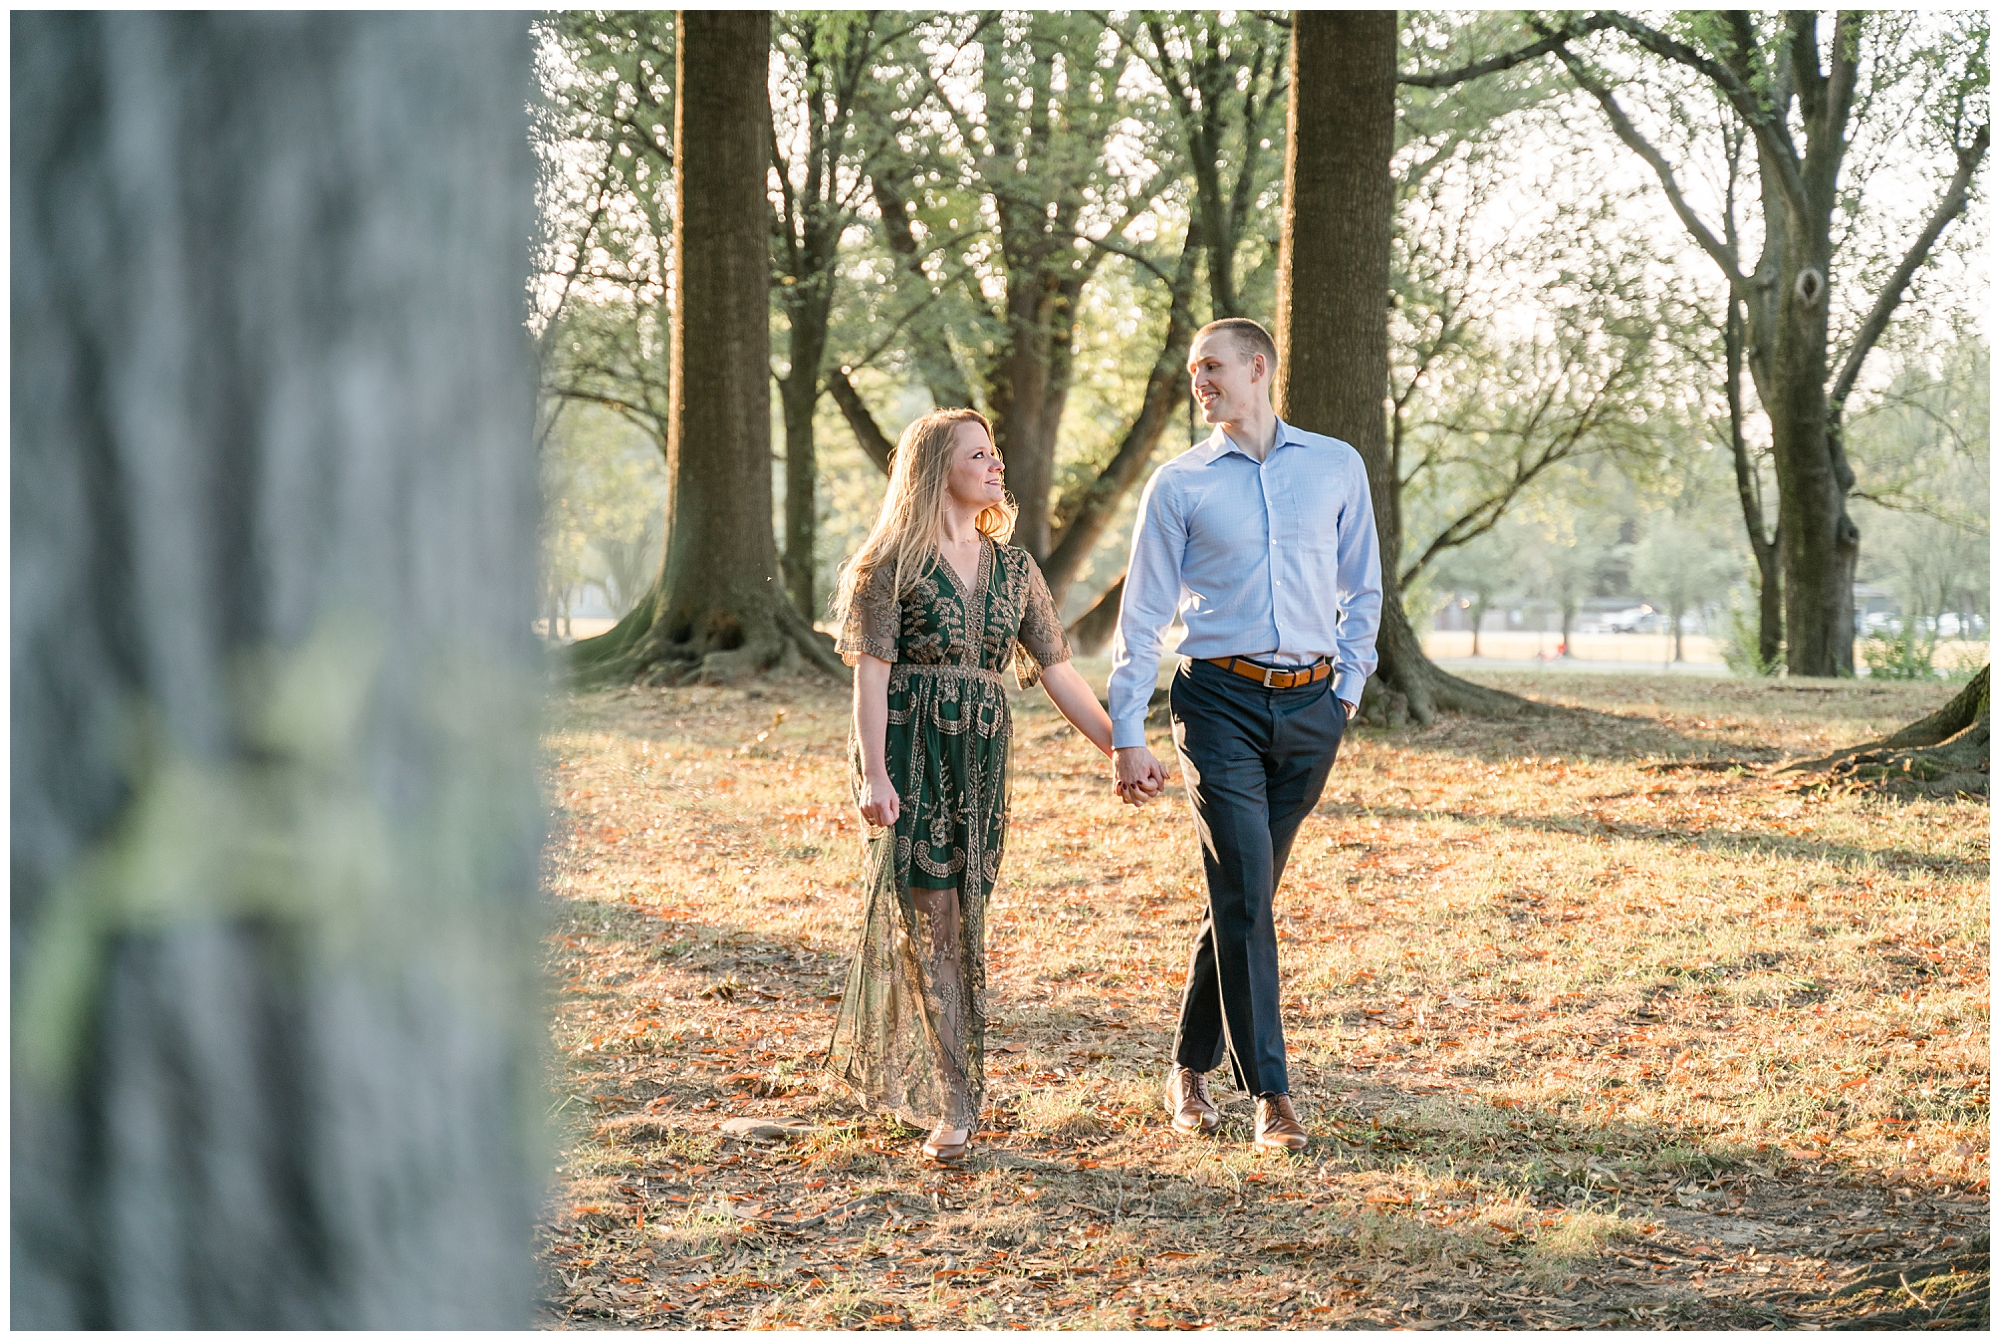 A couple walks through trees while holding hands during their engagement session